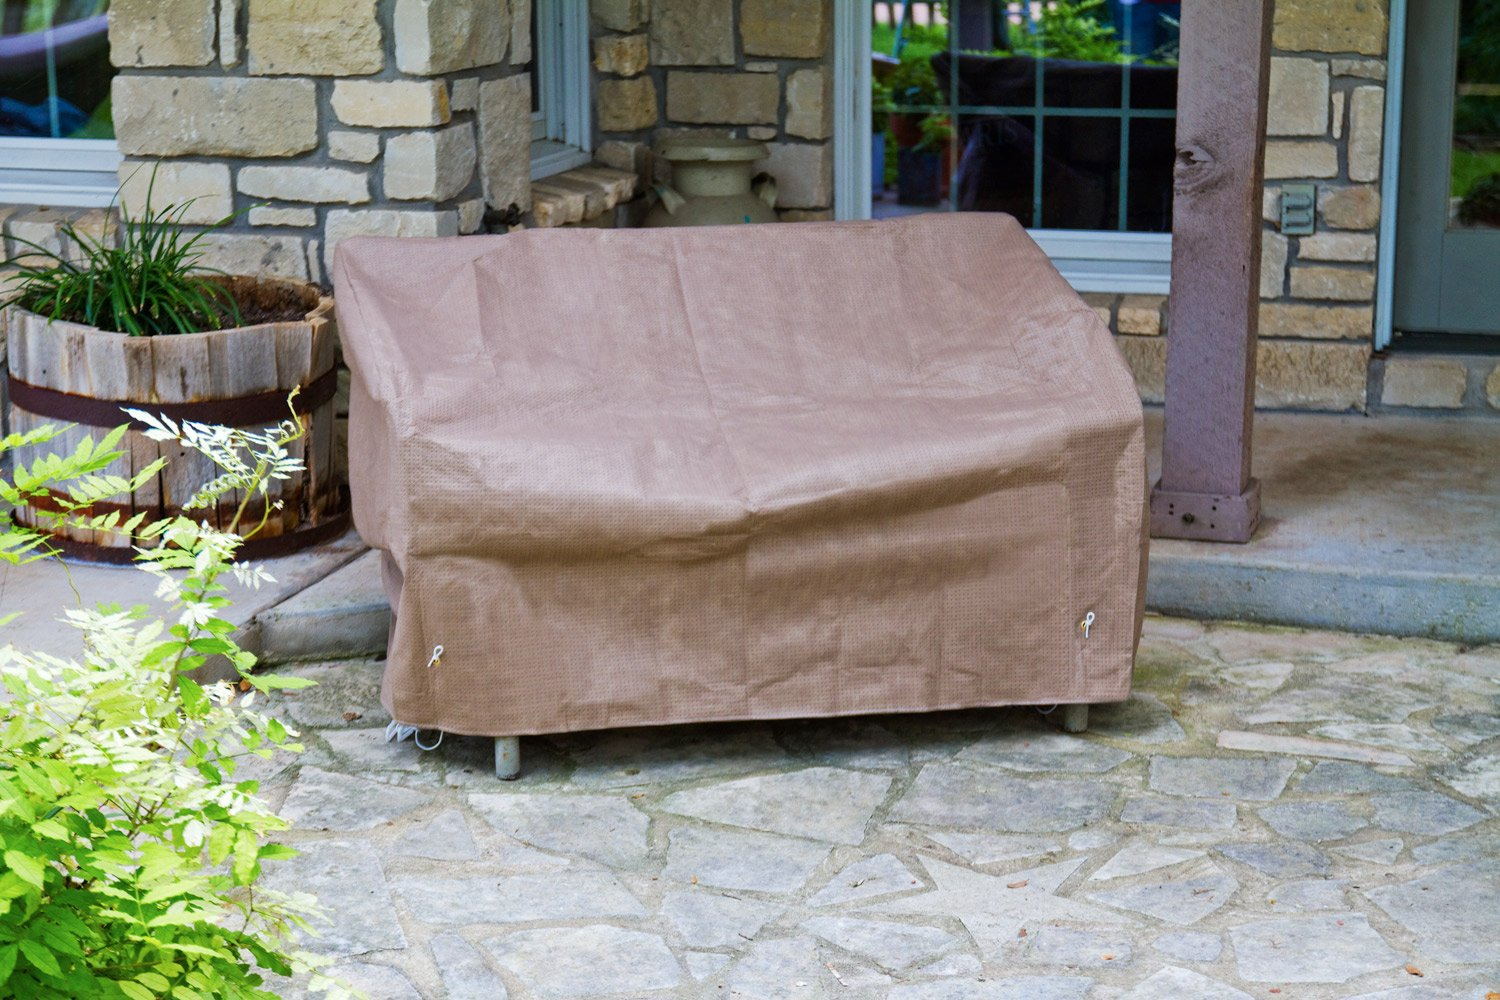 KoverRoos III 39147 Loveseat/Sofa Cover, 51-Inch Width by 33-Inch Diameter by 33-Inch Height, Taupe by KOVERROOS (Image #4)